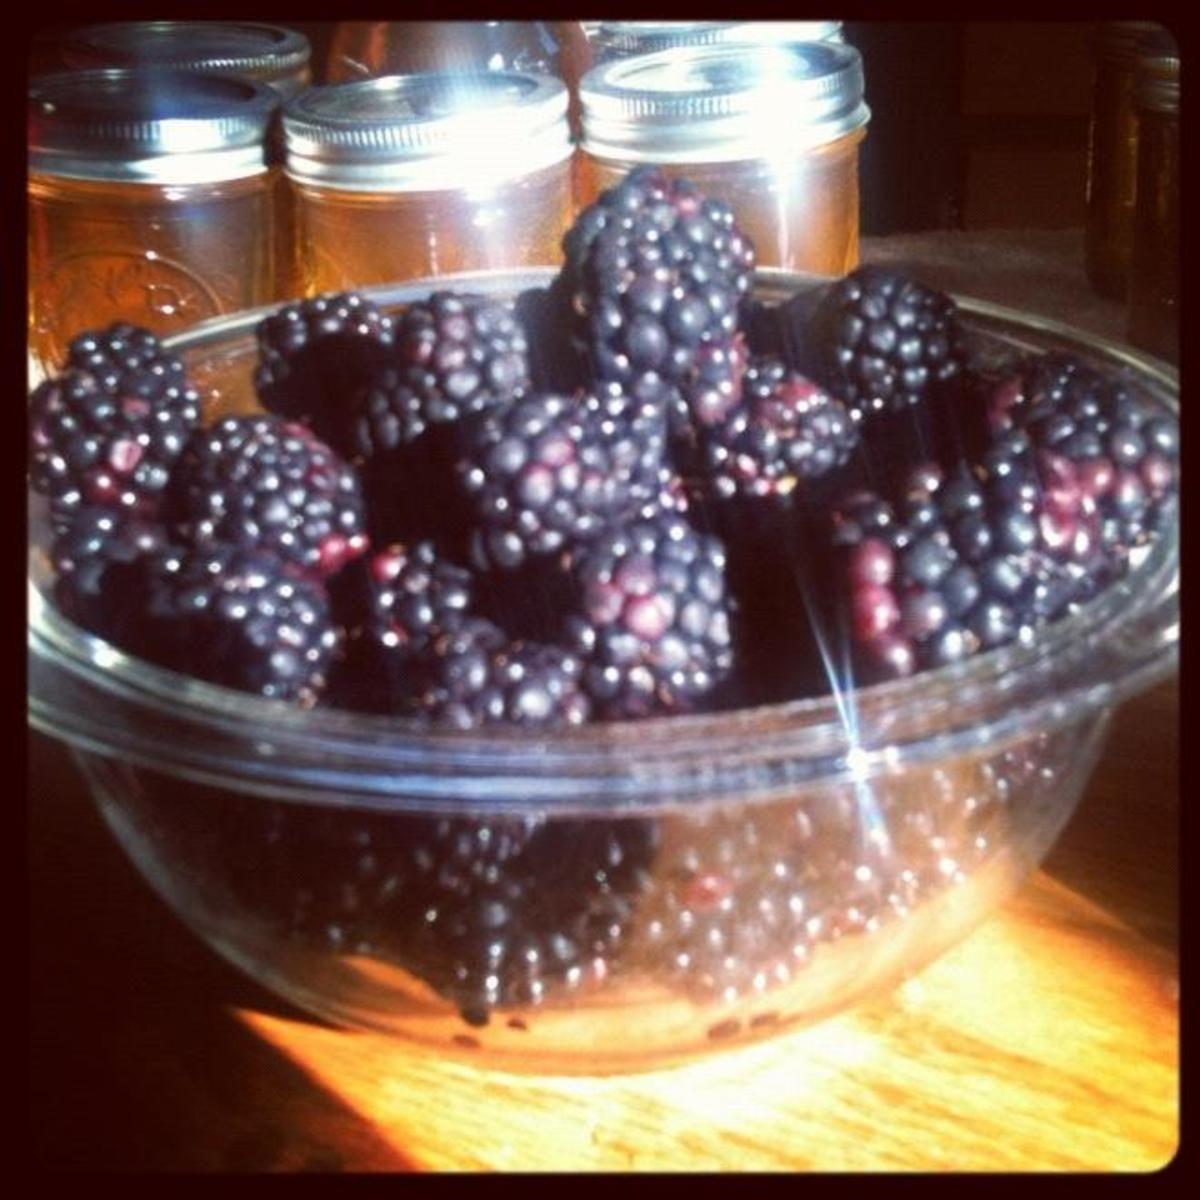 The Best Home Made Blackberry Preserves Recipe